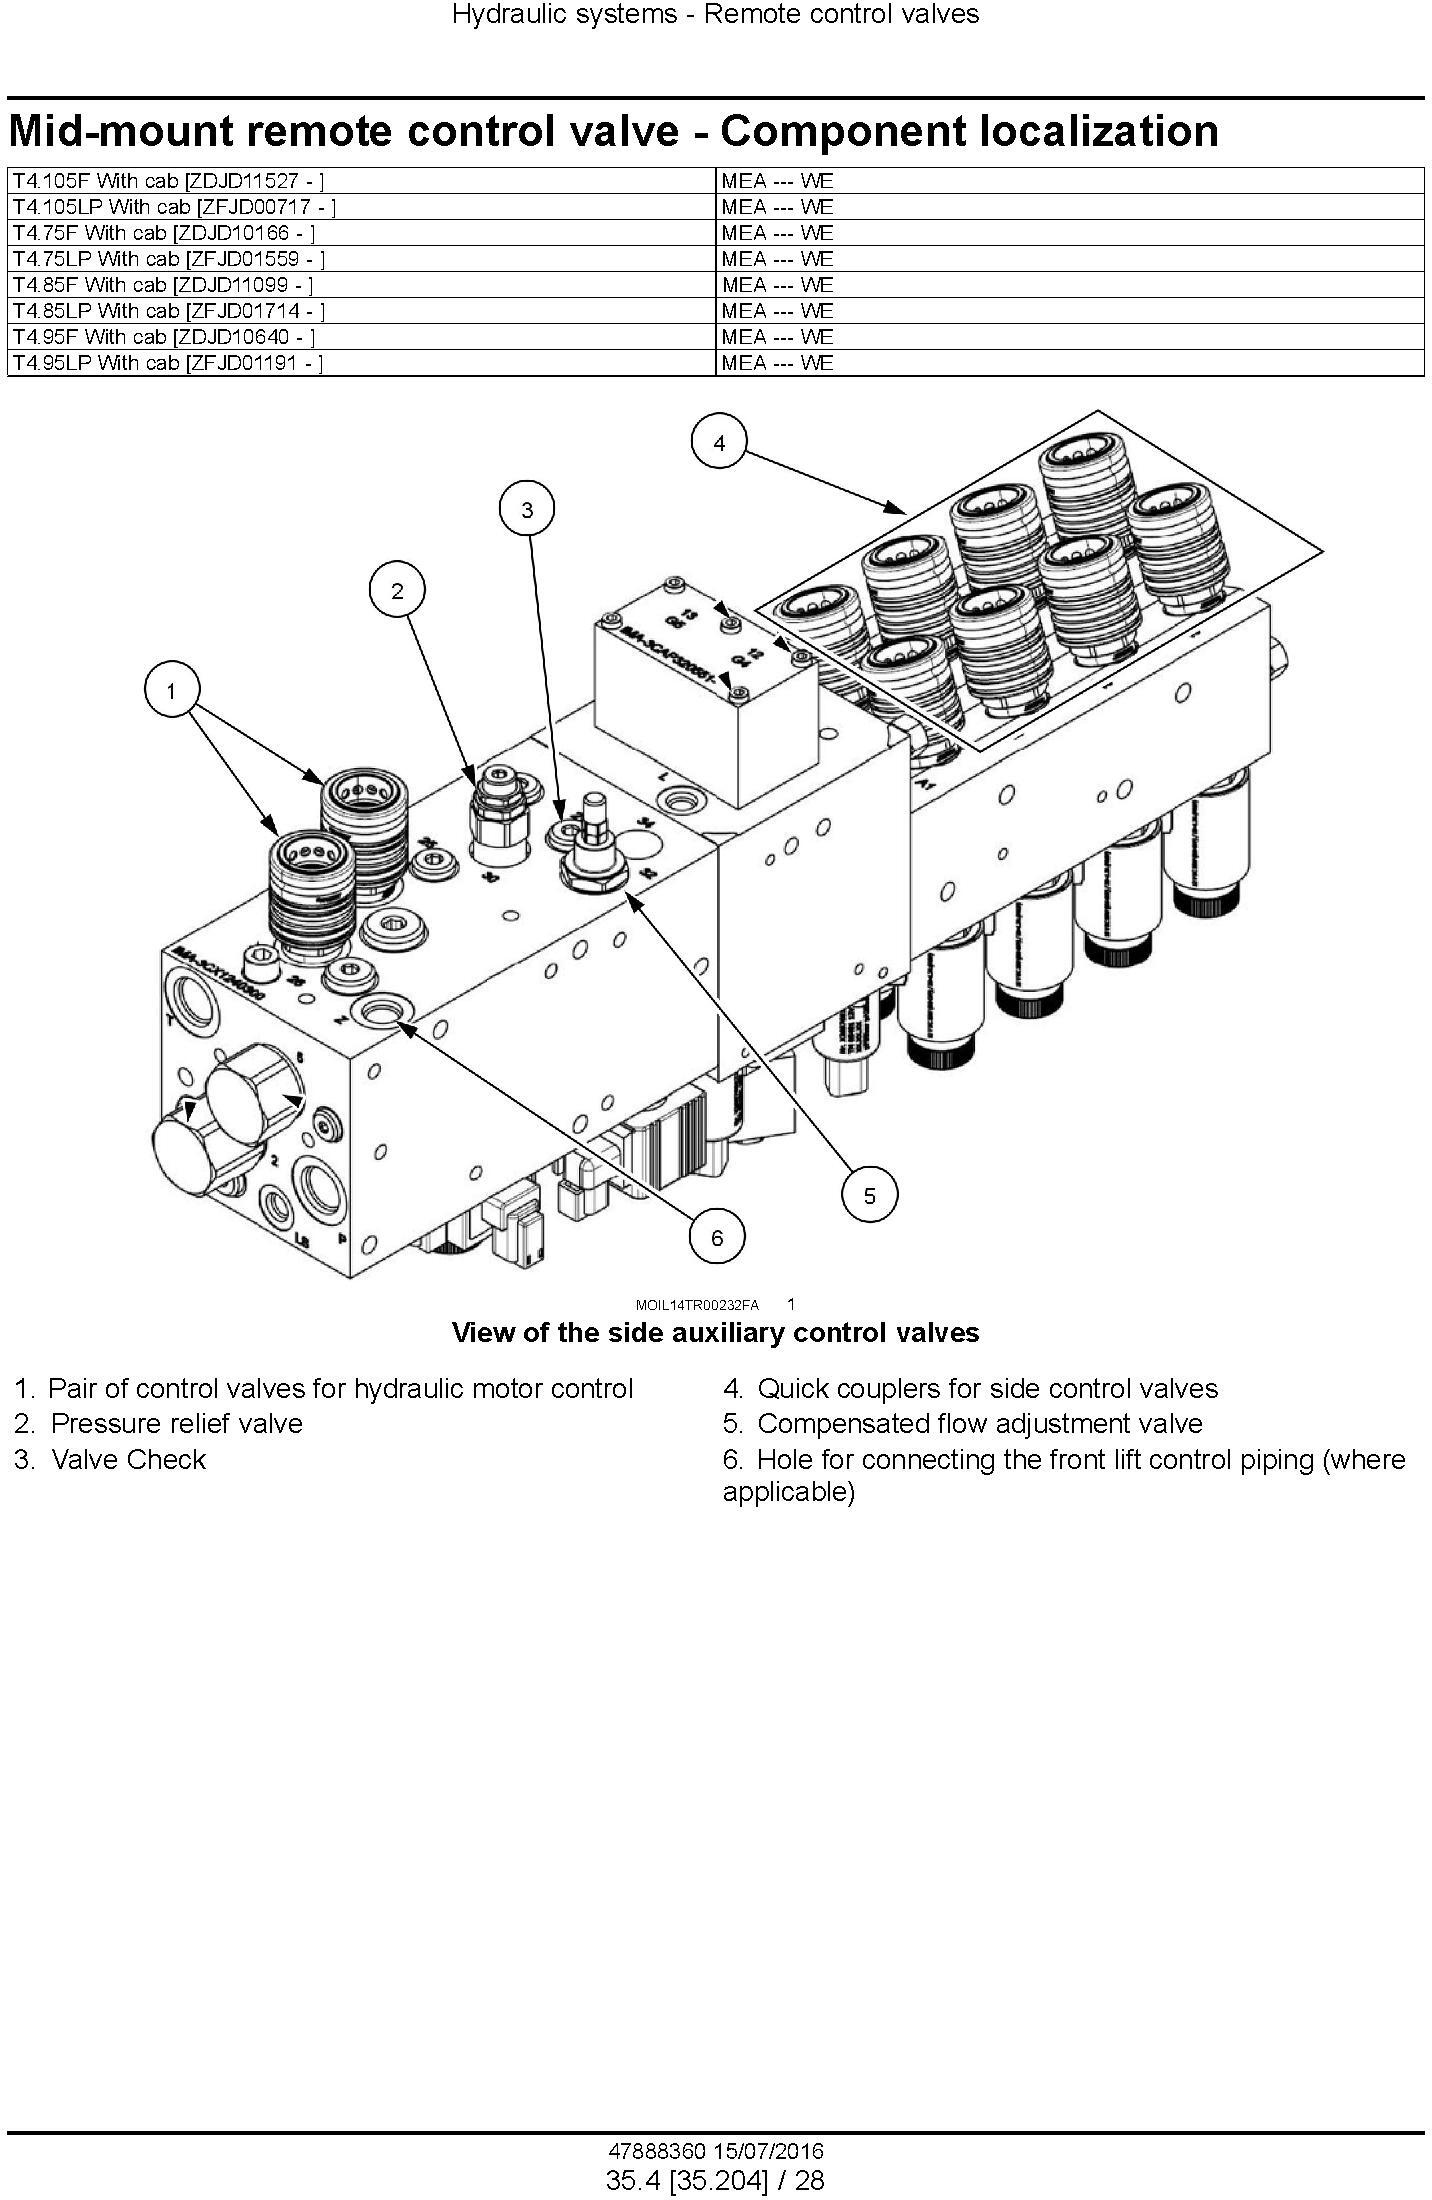 New Holland T4.75F T4.85F T4.95F T4.105F; T4.75LP T4.85LP T4.95LP T4.105LP Tractor Service Manual - 3